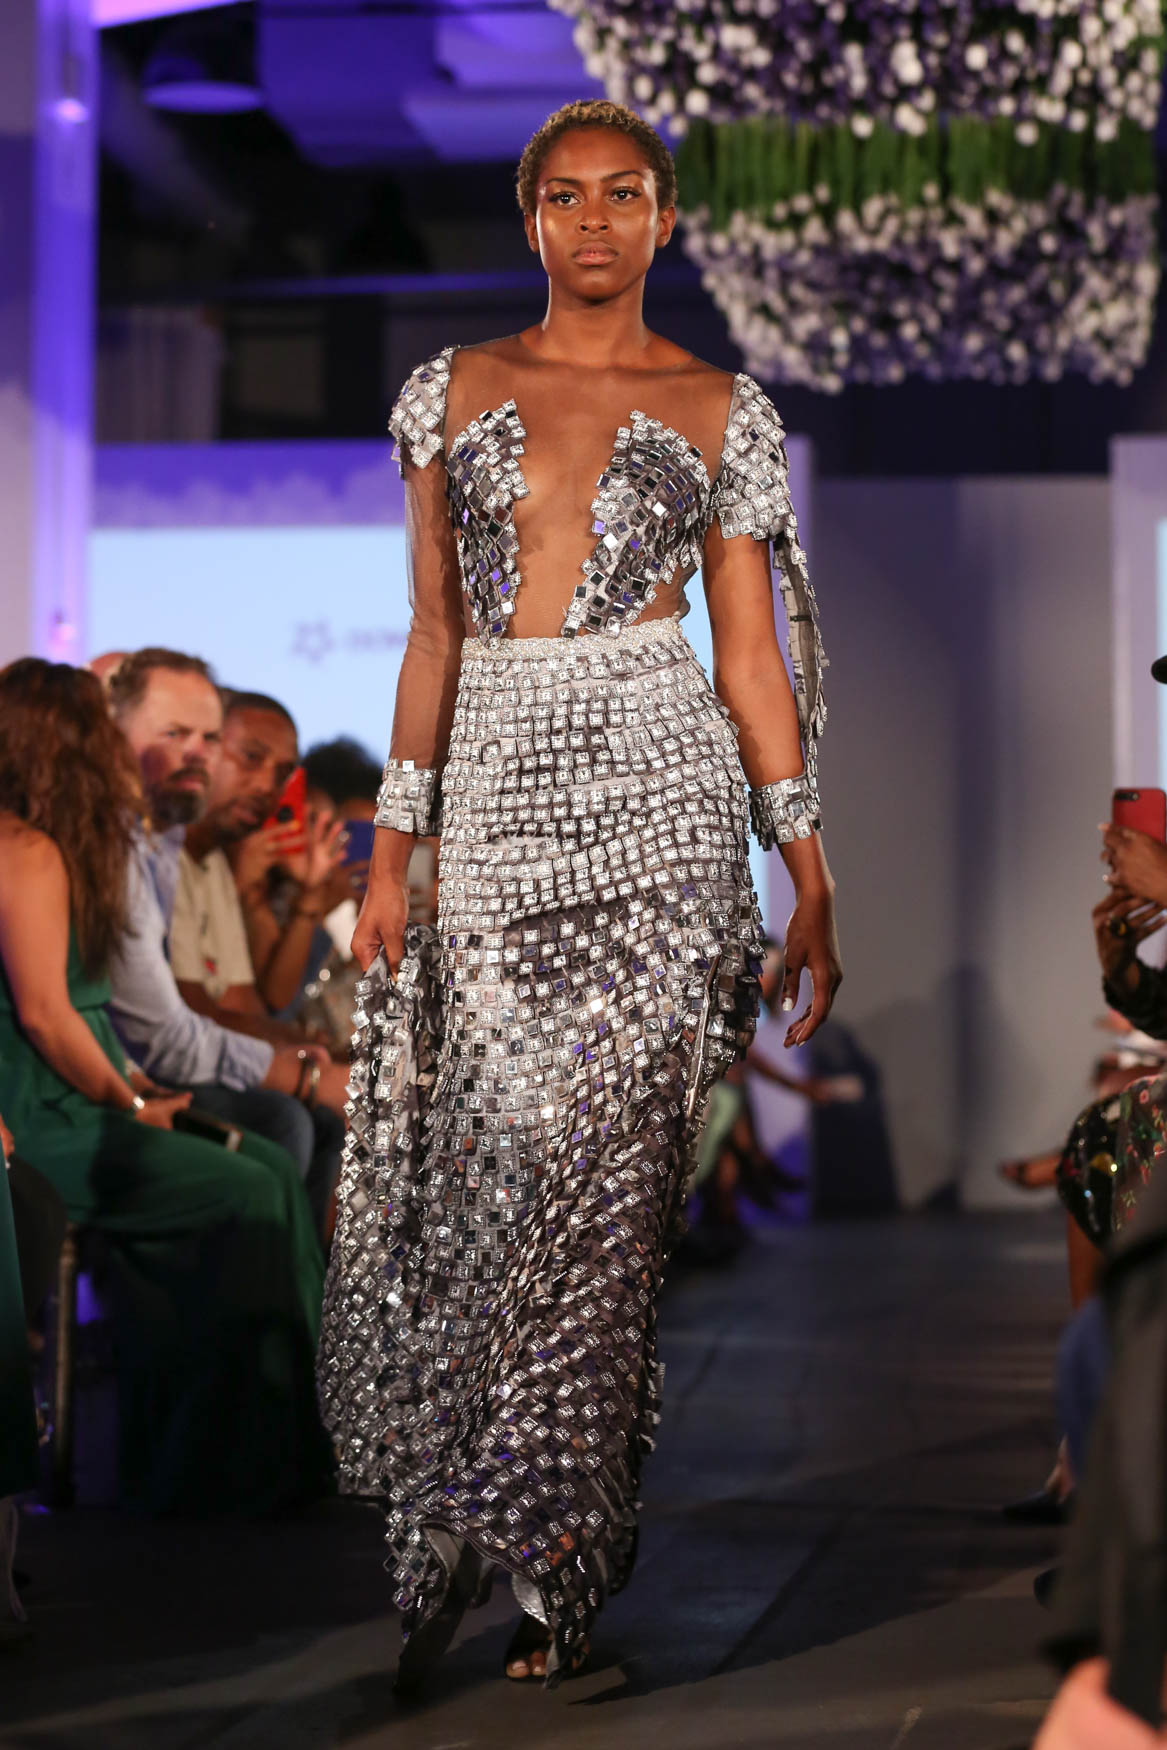 We spotted this look at the District of Fashion show and this dress is armored femininity to a tee. We like to think this is what a fashion-y Joan of Arc would wear.{ }(Amanda Andrade-Rhoades/DC Refined)